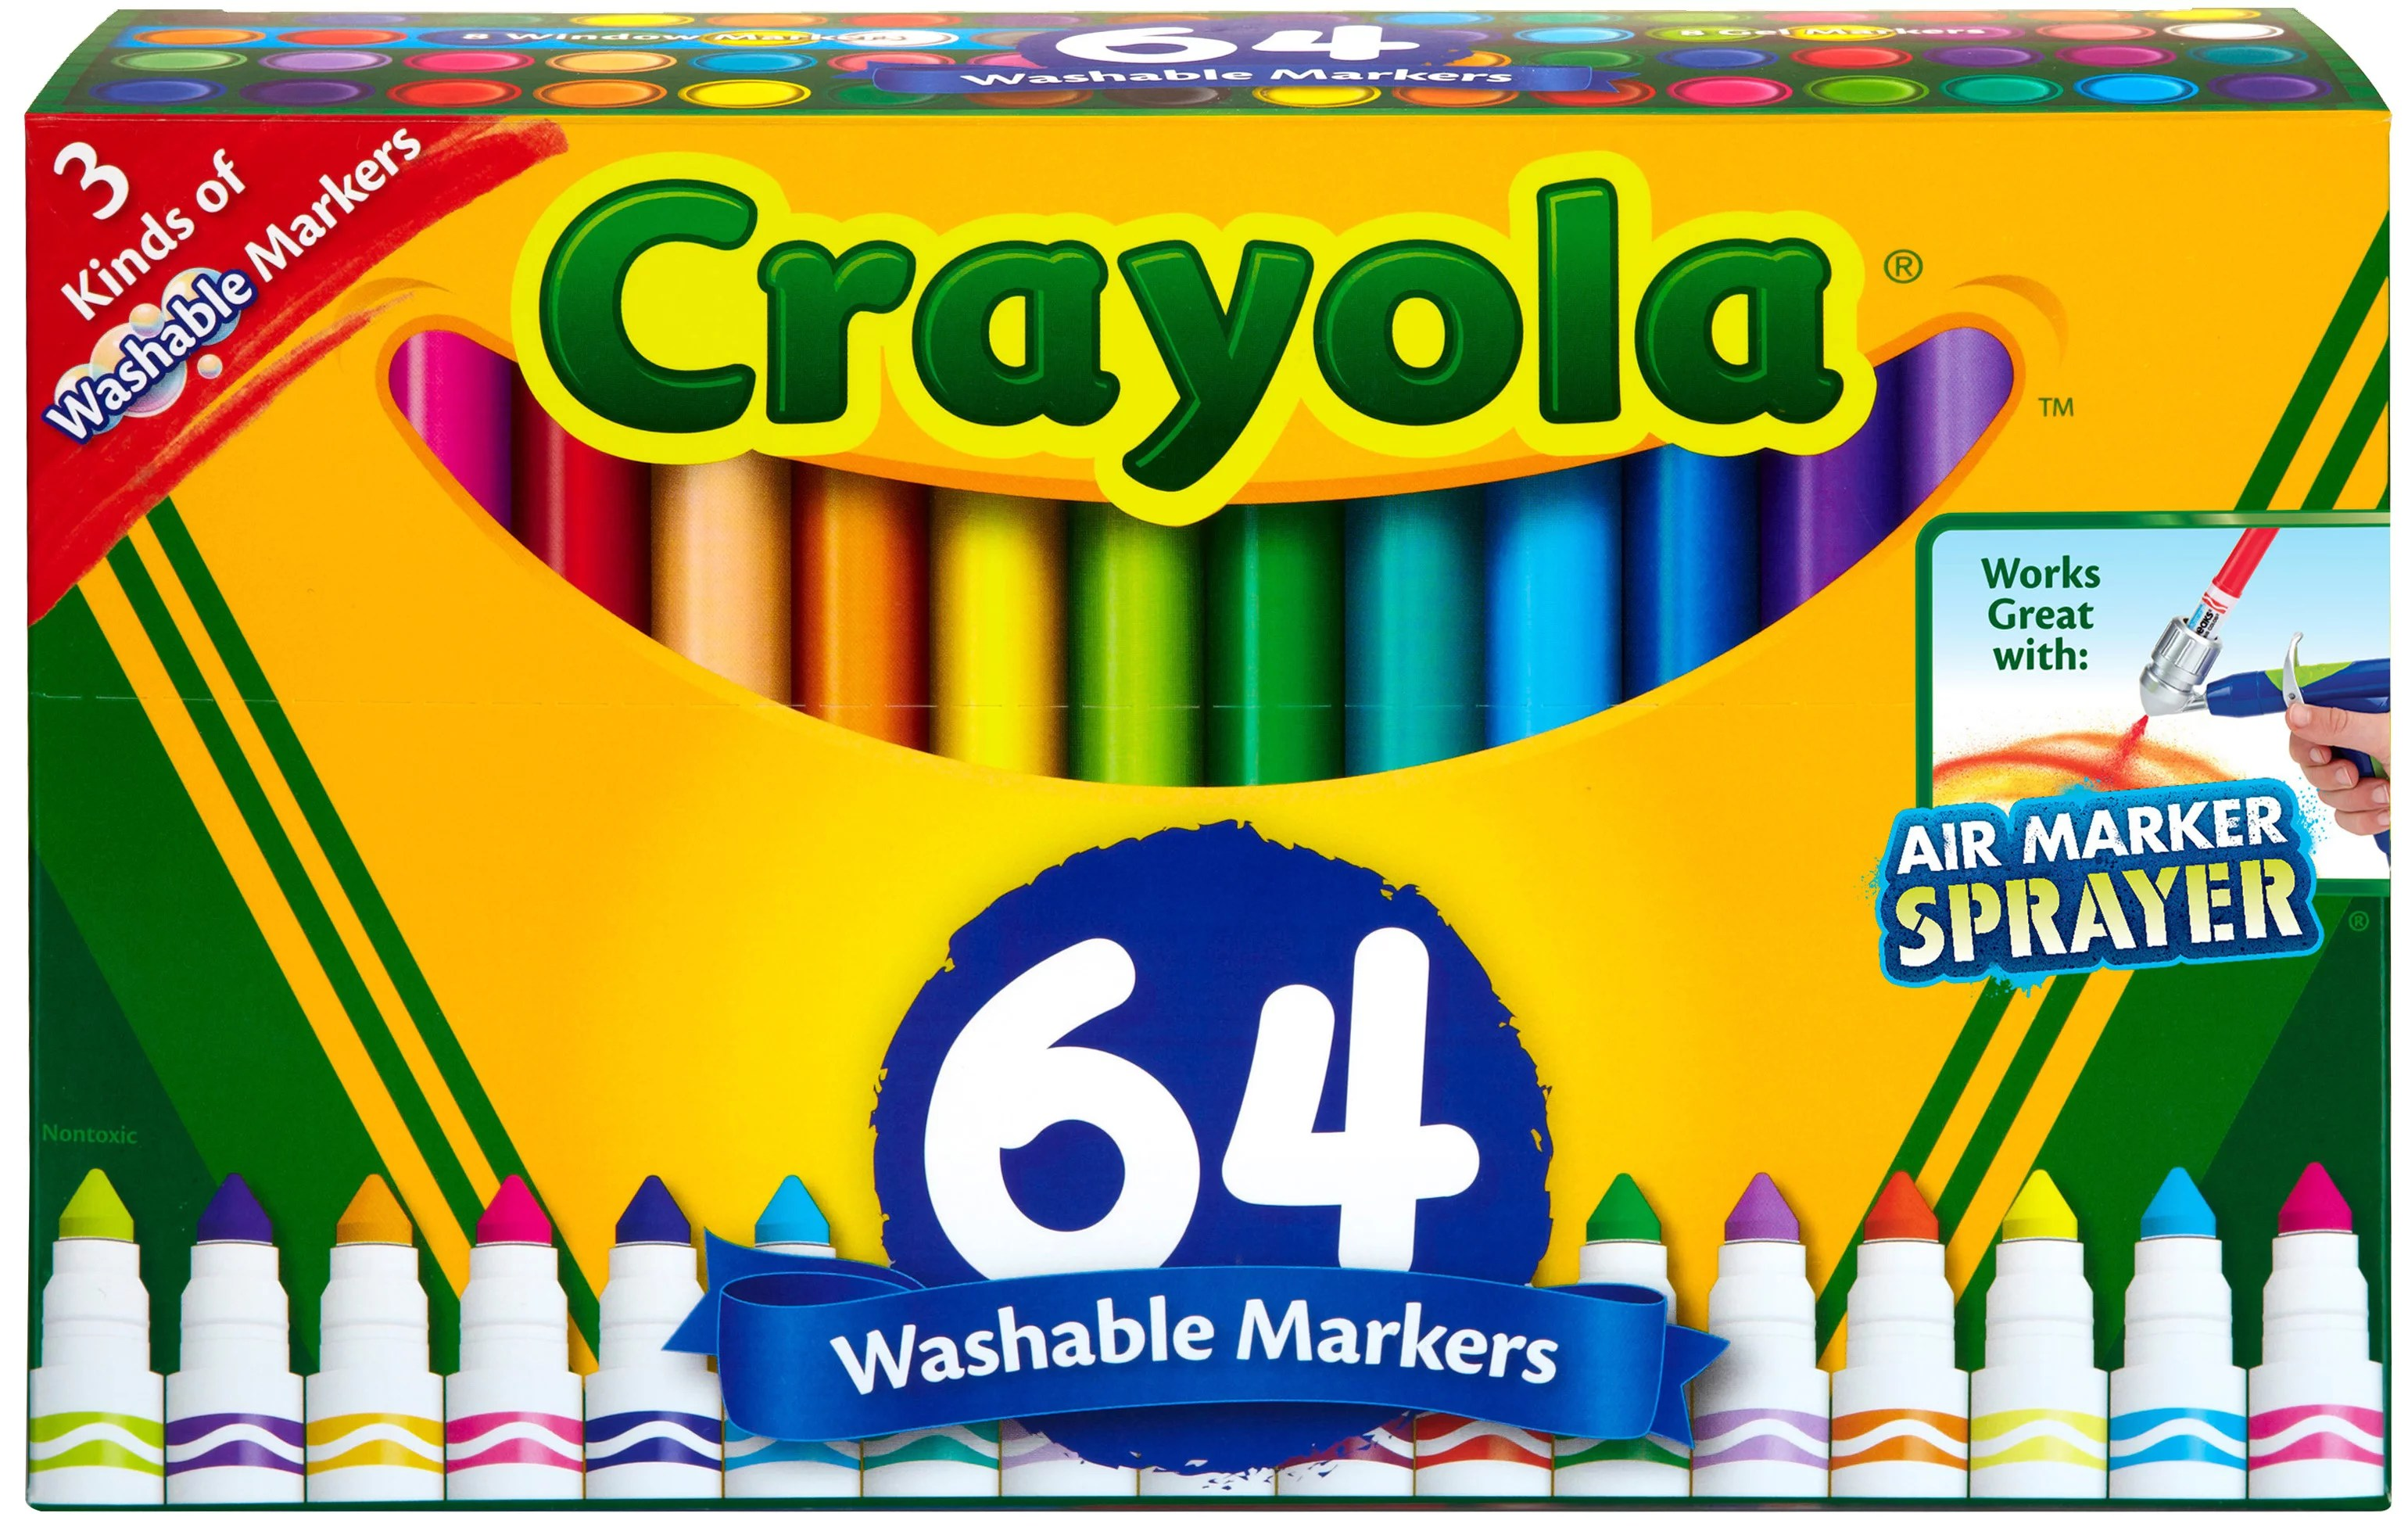 Support Stain Tips My First Crayola Washable Paint My First Crayola Washable Paint On Fabric ...